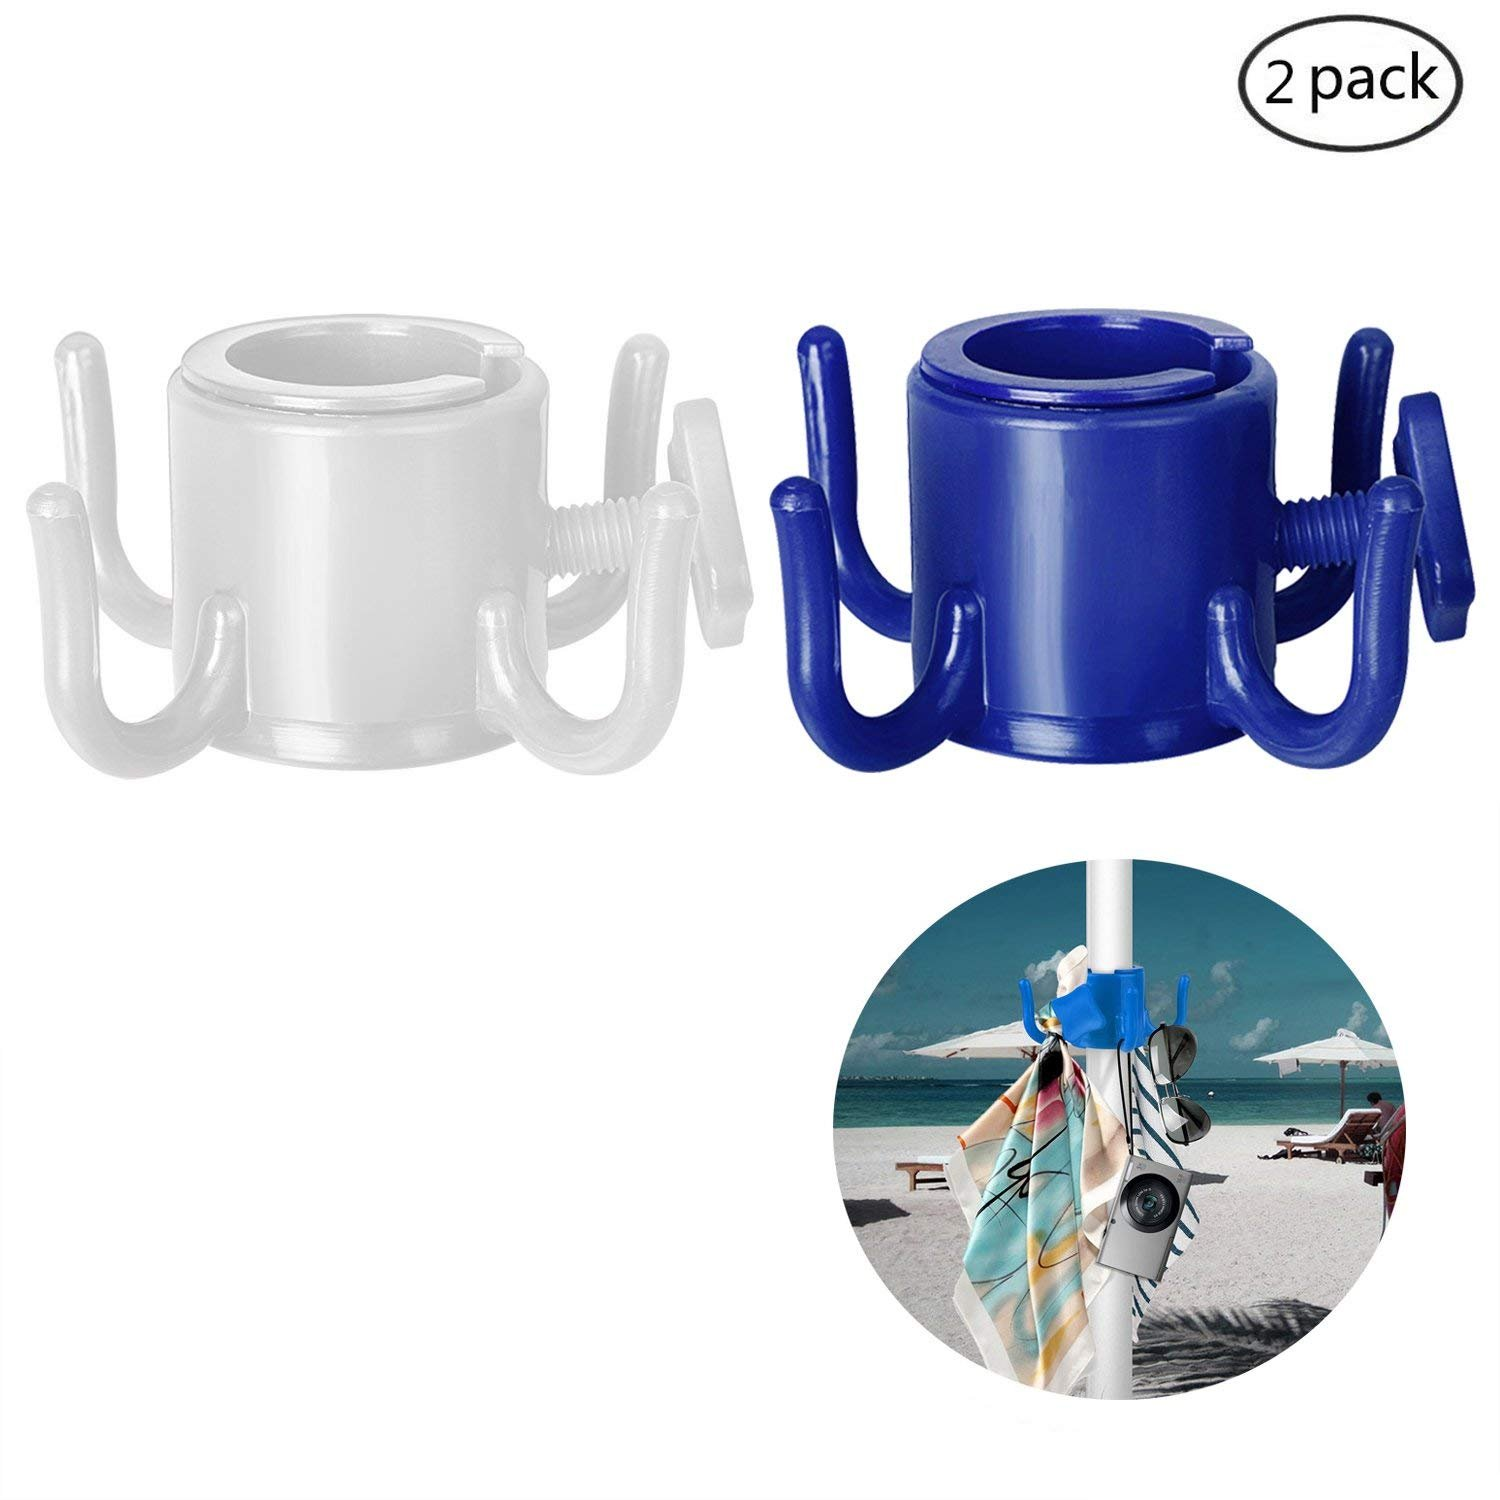 Sun Gear Beach Umbrella Sand Anchor Use In Sand Or Soft Ground Fits Most Umbrellas Very Easy To Use Strong Lightweight Blue